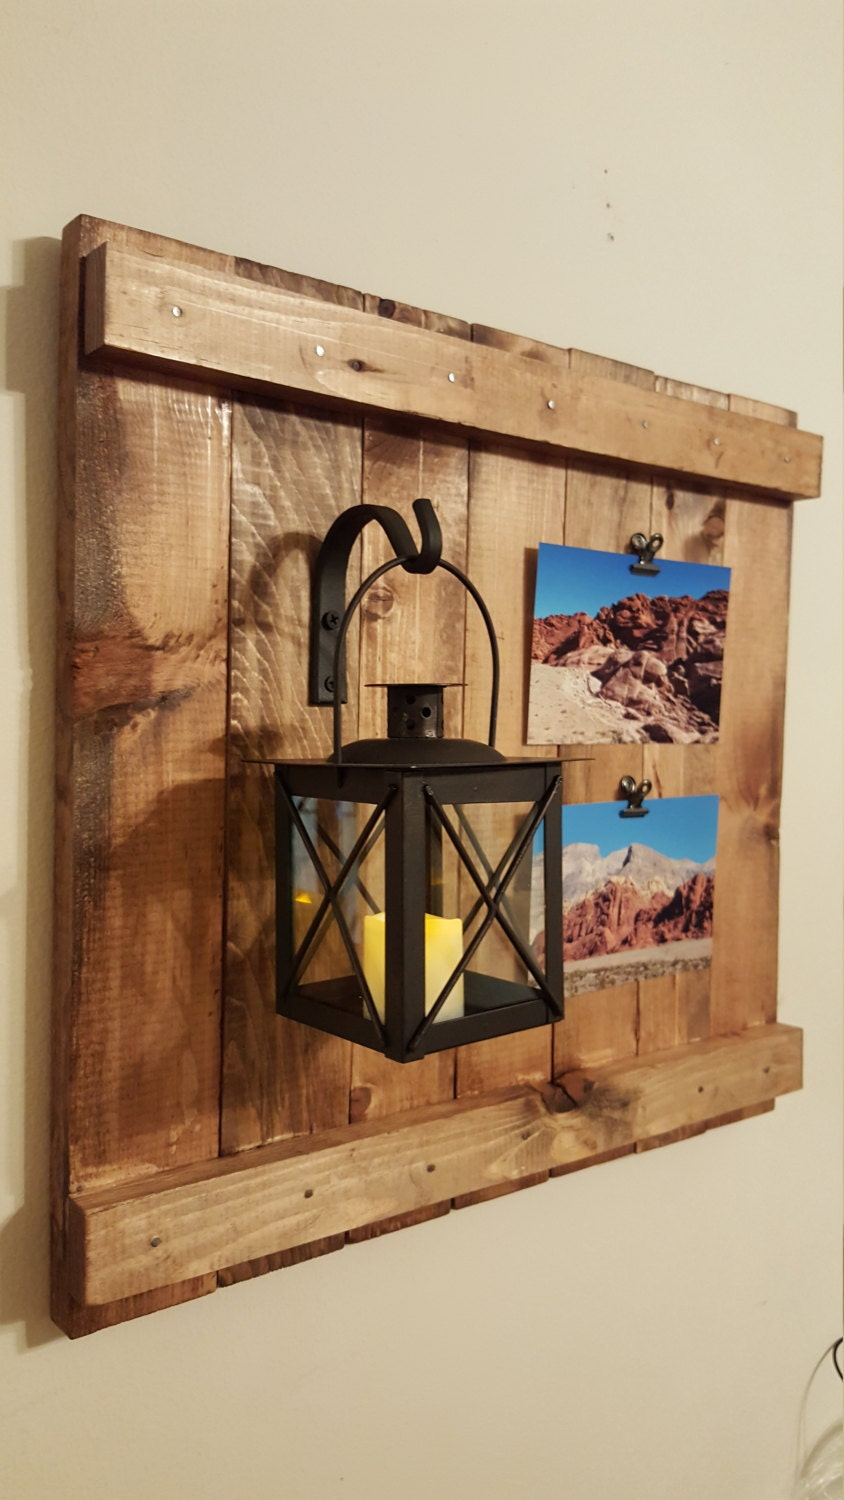 Wrought Iron Wall Decor With Wood Frame : Lantern with wrought iron rustic picture frame wall